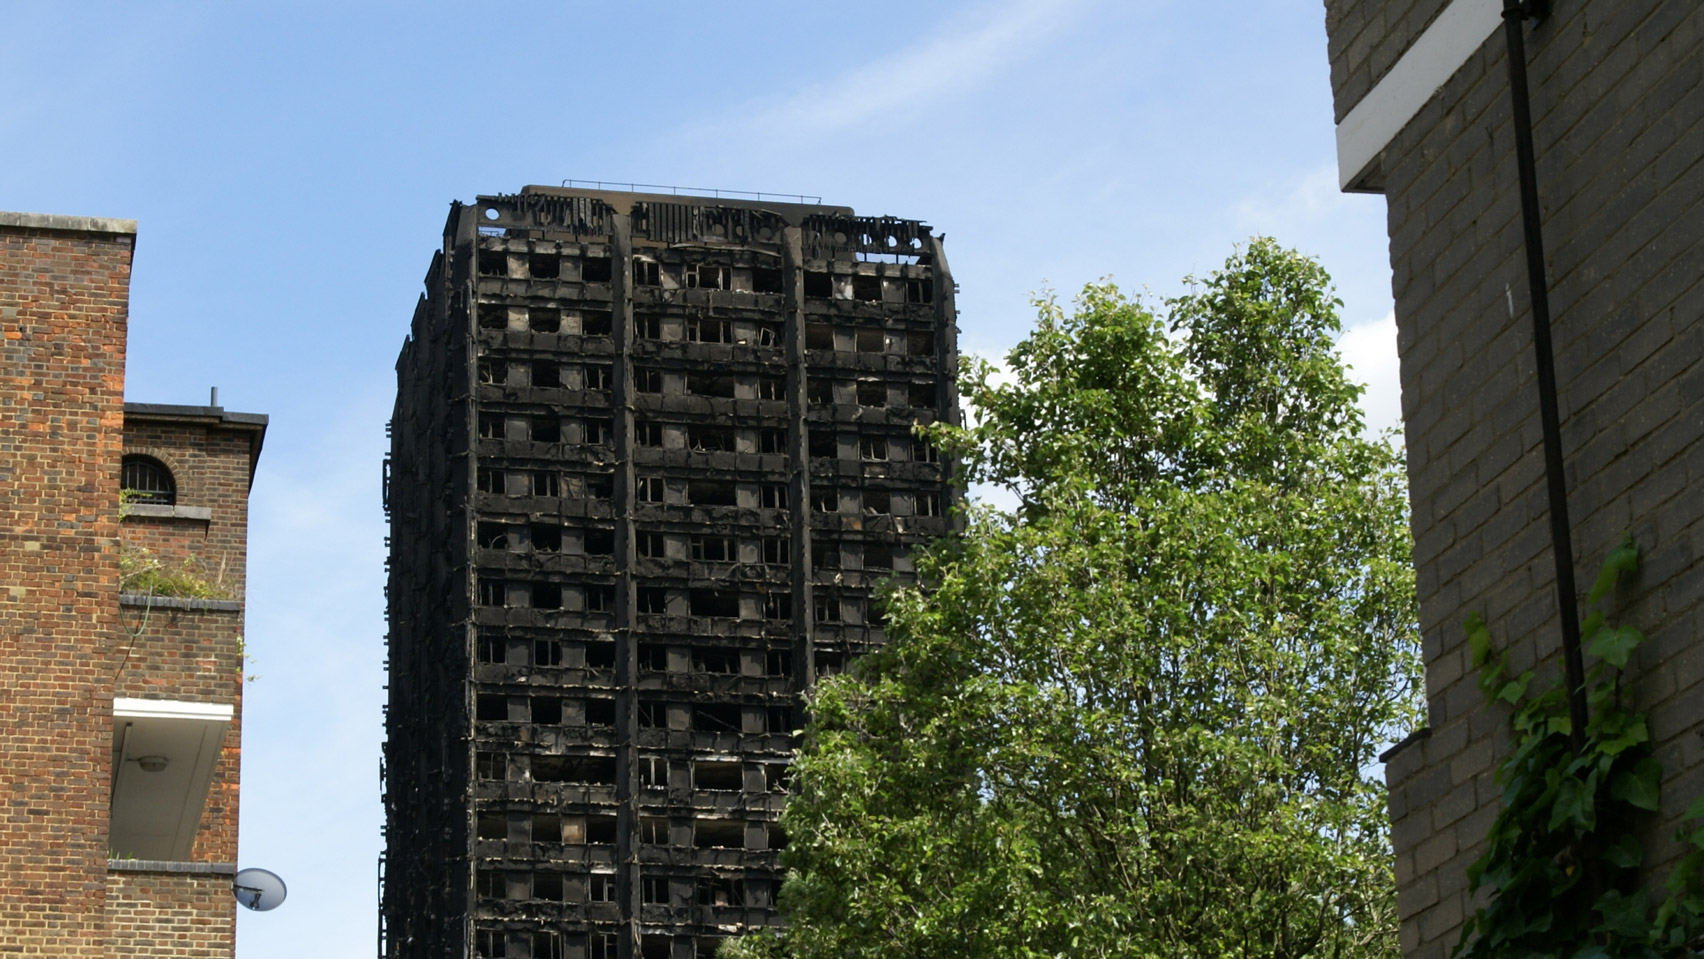 Independent inquiry: Grenfell exposed a 'systemic failure' of building regulation